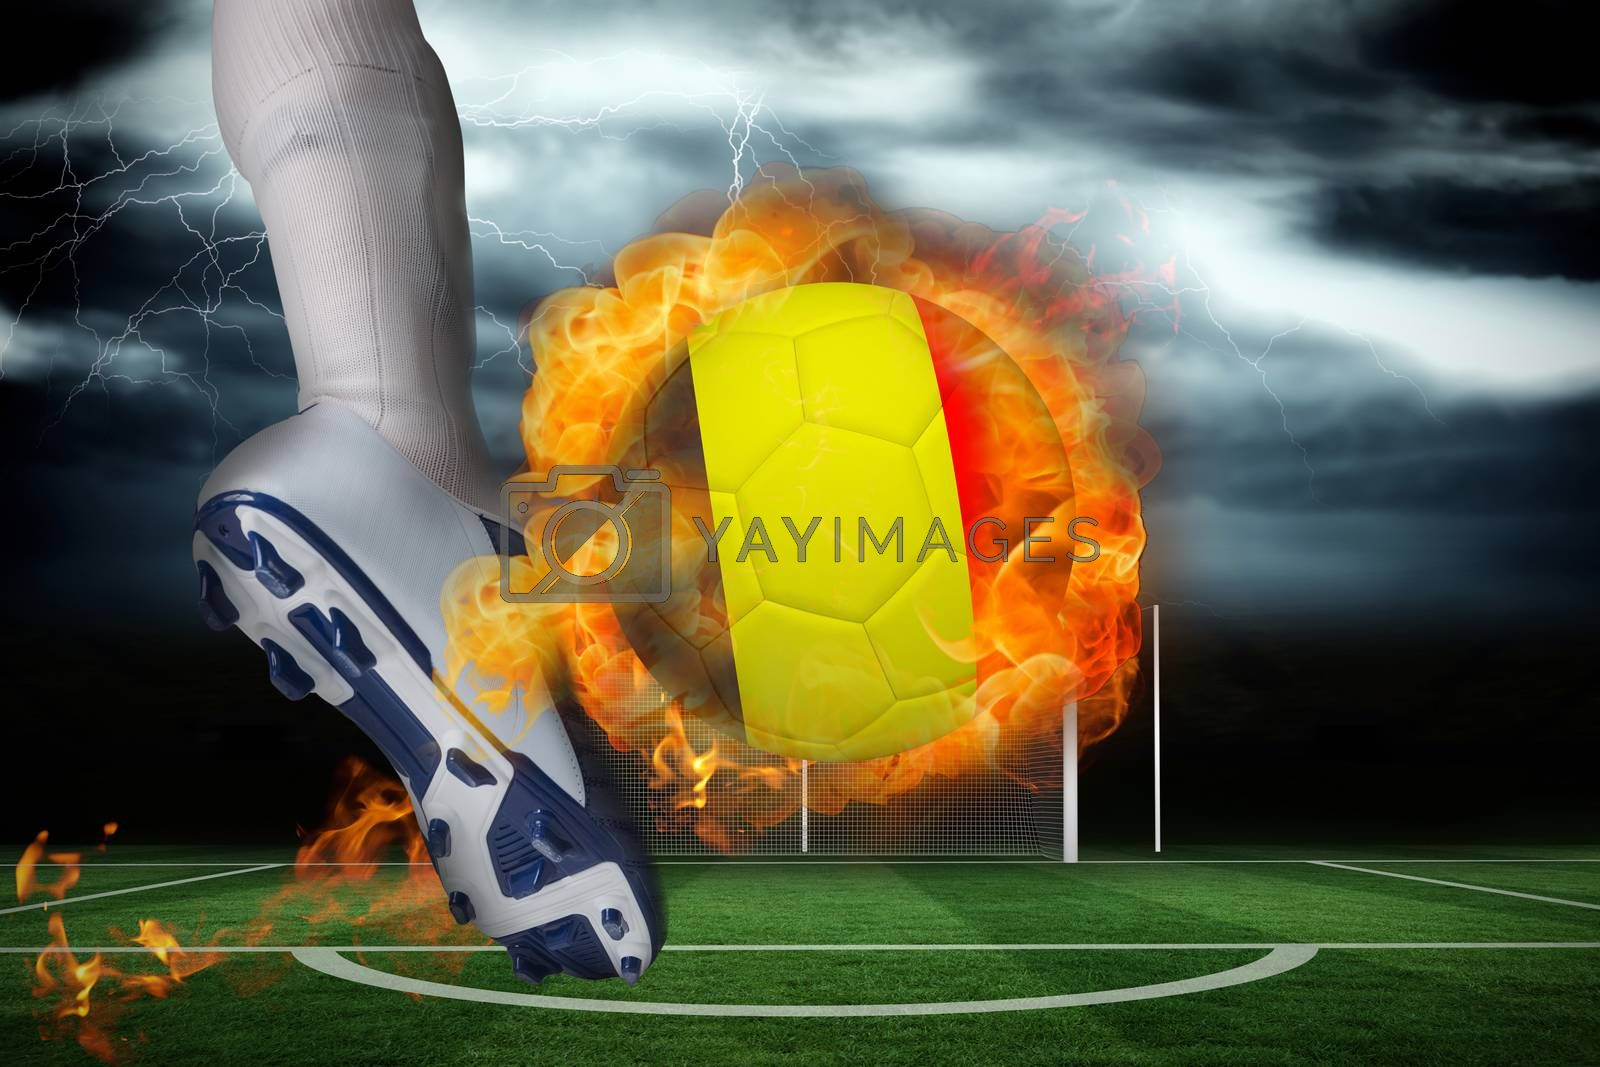 Football player kicking flaming belgium flag ball by Wavebreakmedia